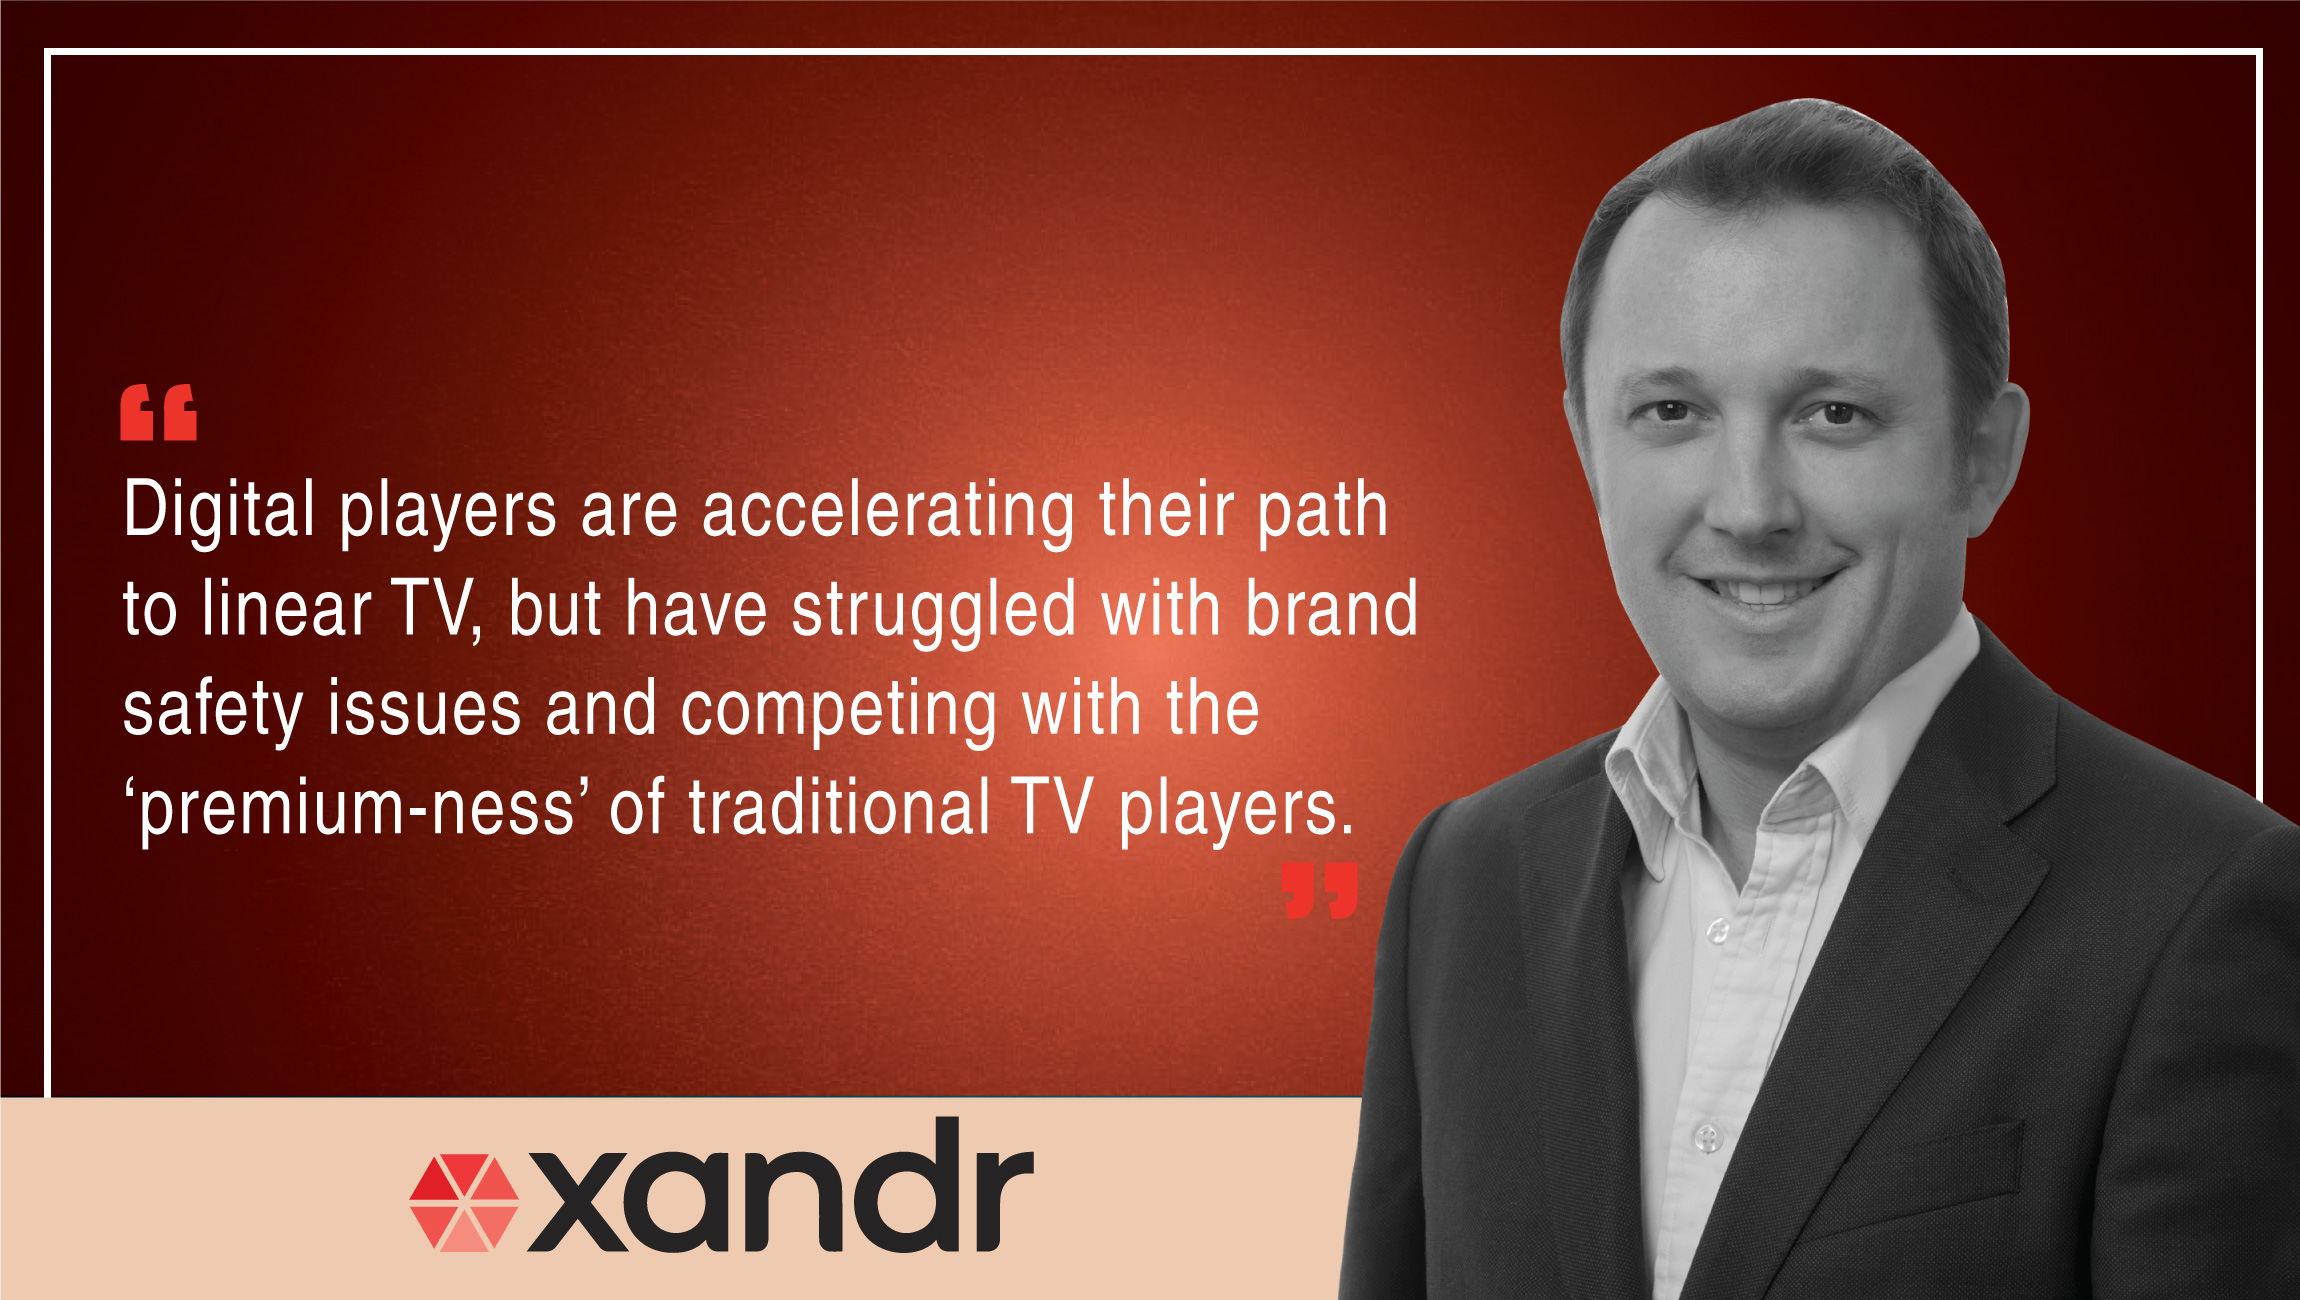 TechBytes with Jerome Underhill, SVP EMEA, APAC and LATAM at Xandr